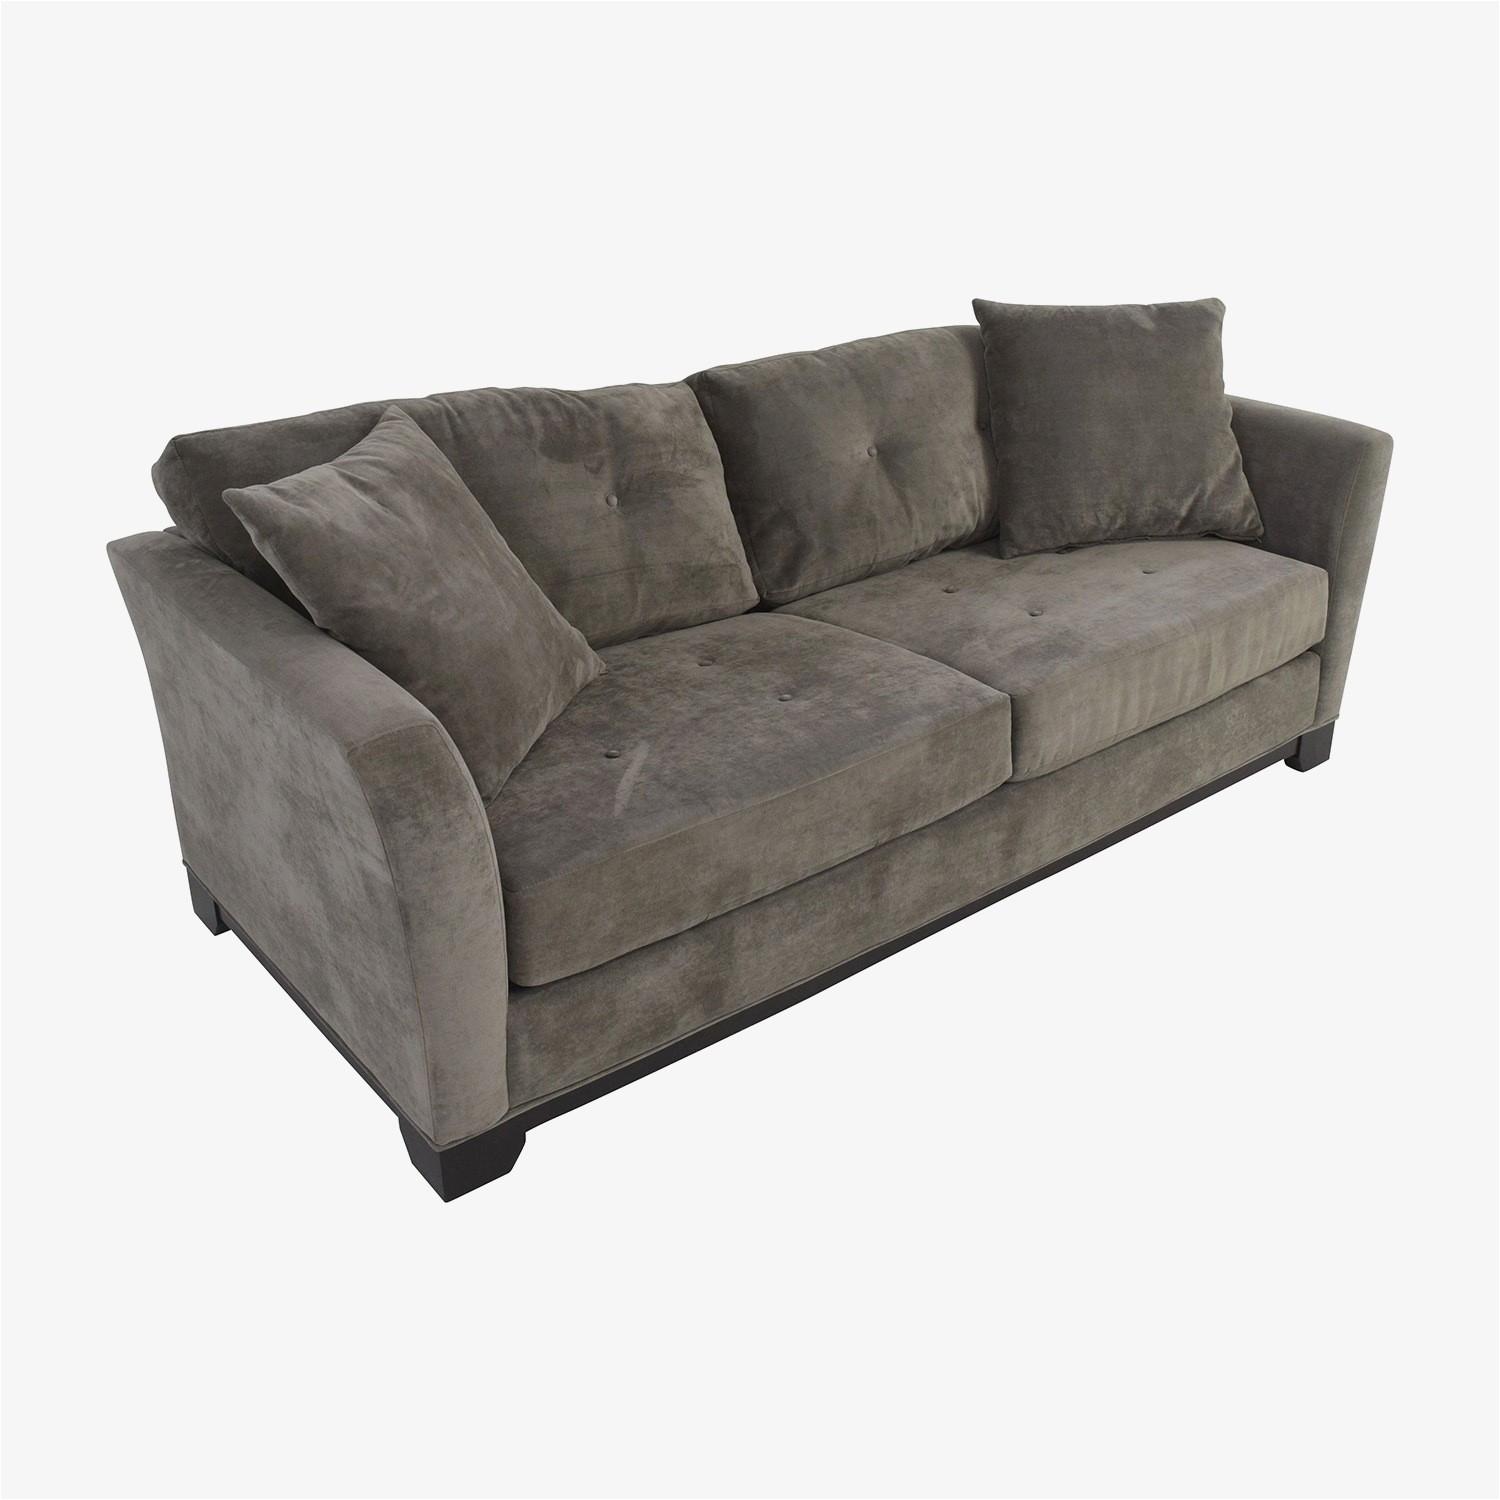 Living Spaces Sleeper Sofa – Home Decor 88 in Lucy Grey 2 Piece Sectionals With Raf Chaise (Image 16 of 30)